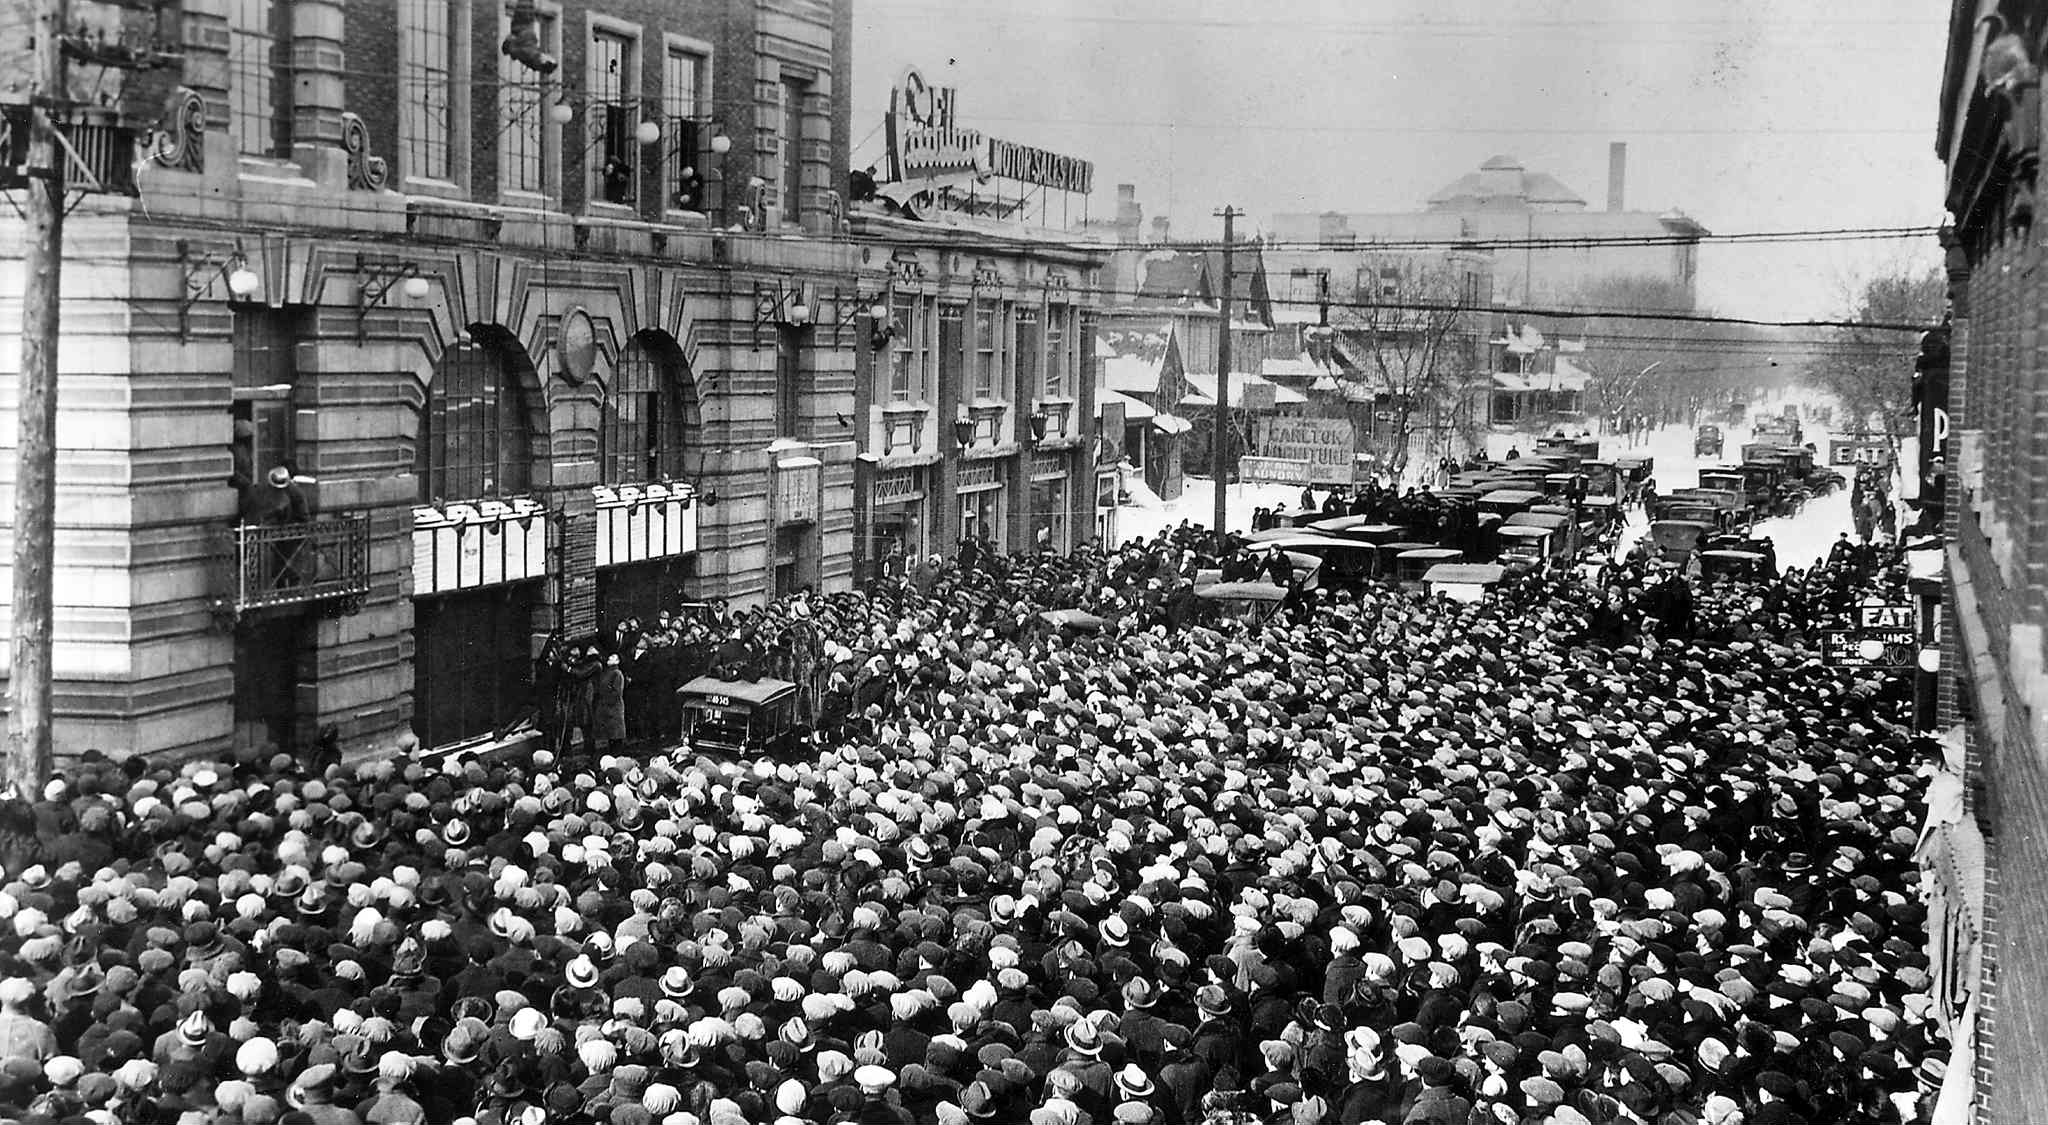 L.B. Foote